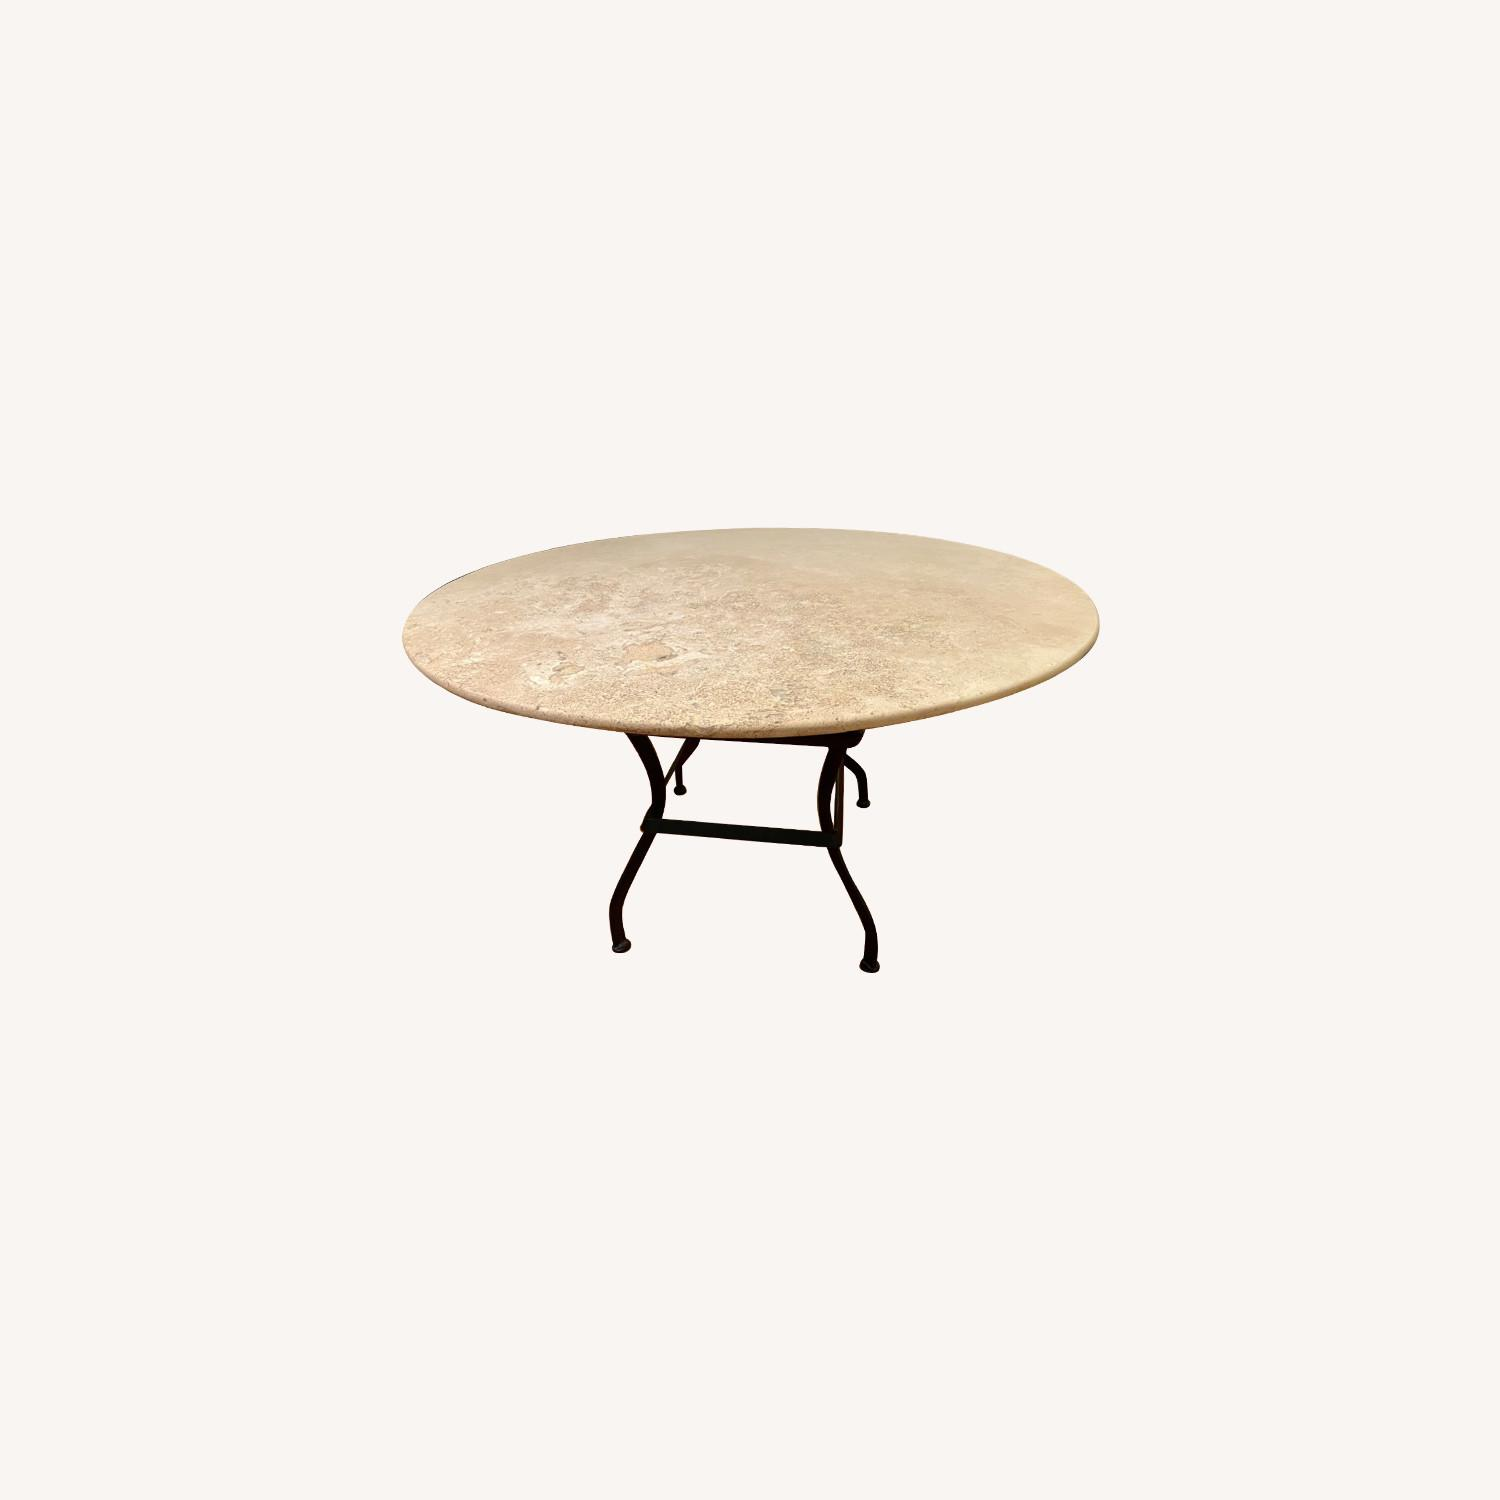 Crate & Barrel Stone Dining Table Indoor Outdoor - image-0